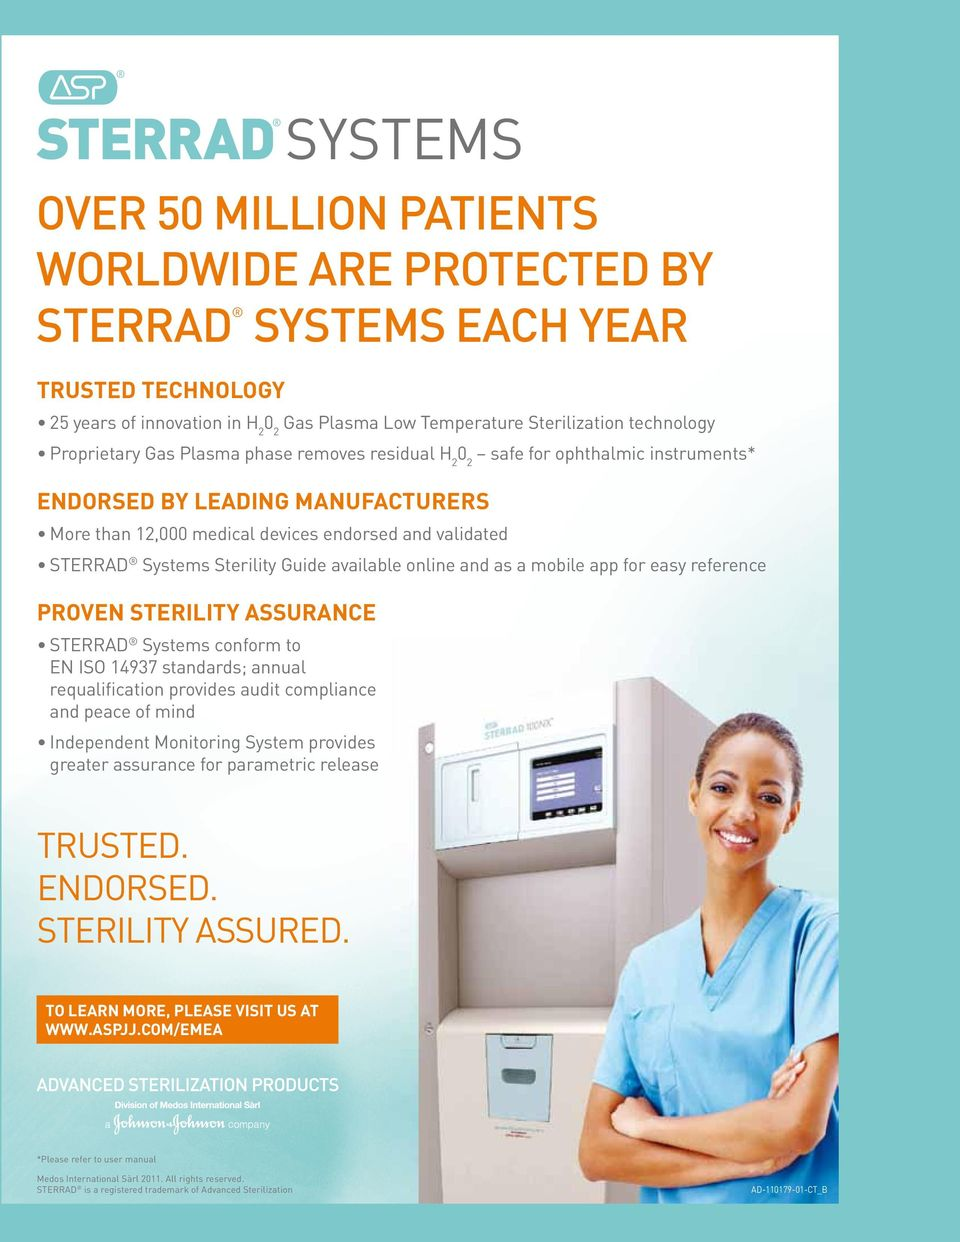 Sterility Guide available online and as a mobile app for easy reference PROVEN STERILITY ASSURANCE STERRAD Systems conform to EN ISO 14937 standards; annual requalification provides audit compliance